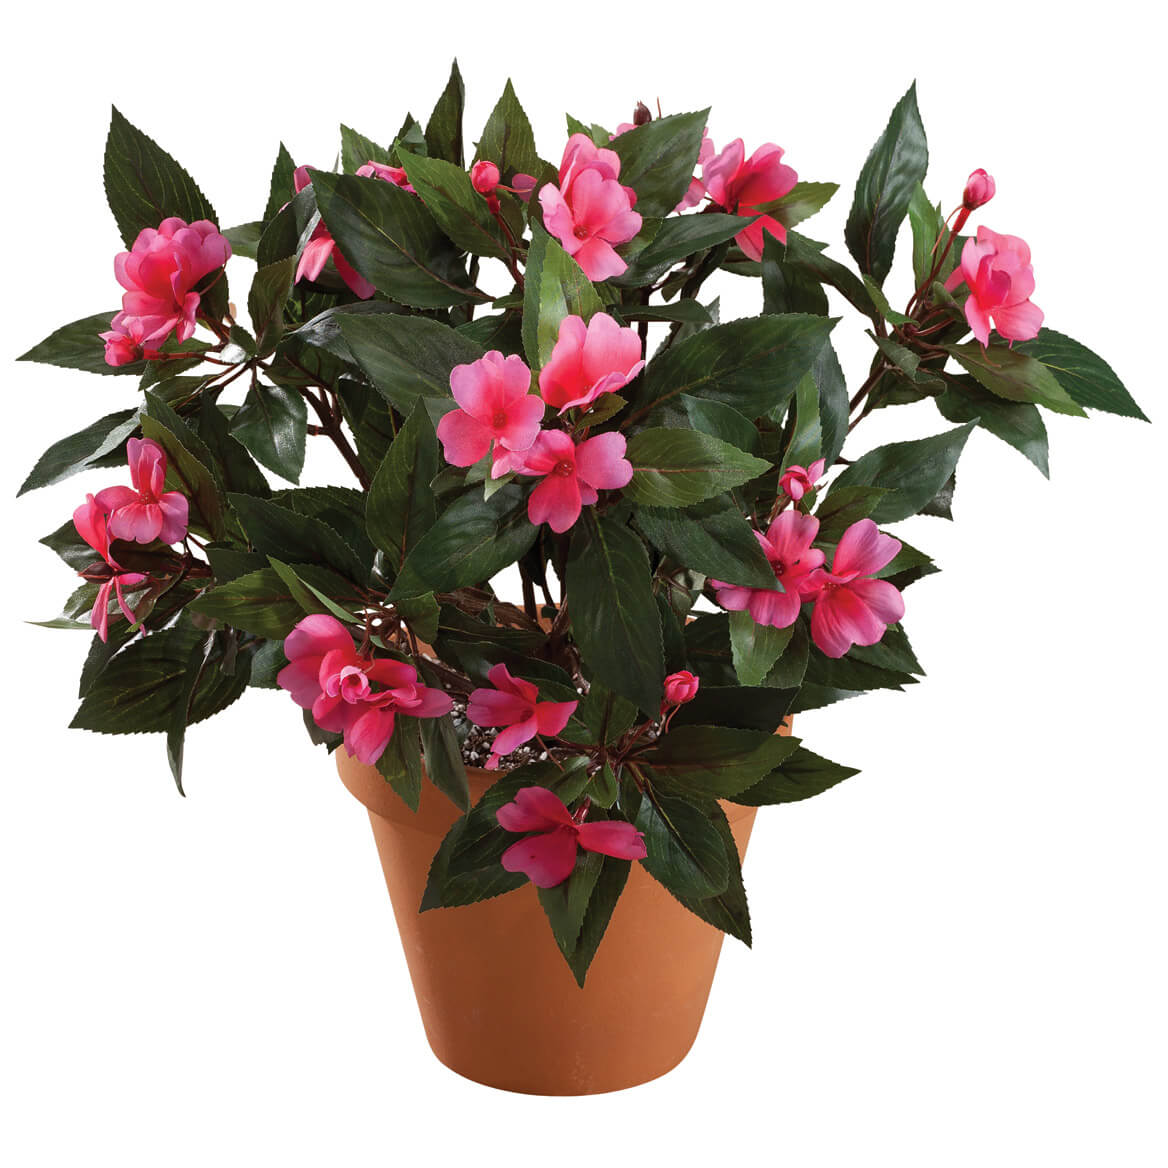 Impatiens Busy by OakRidge™